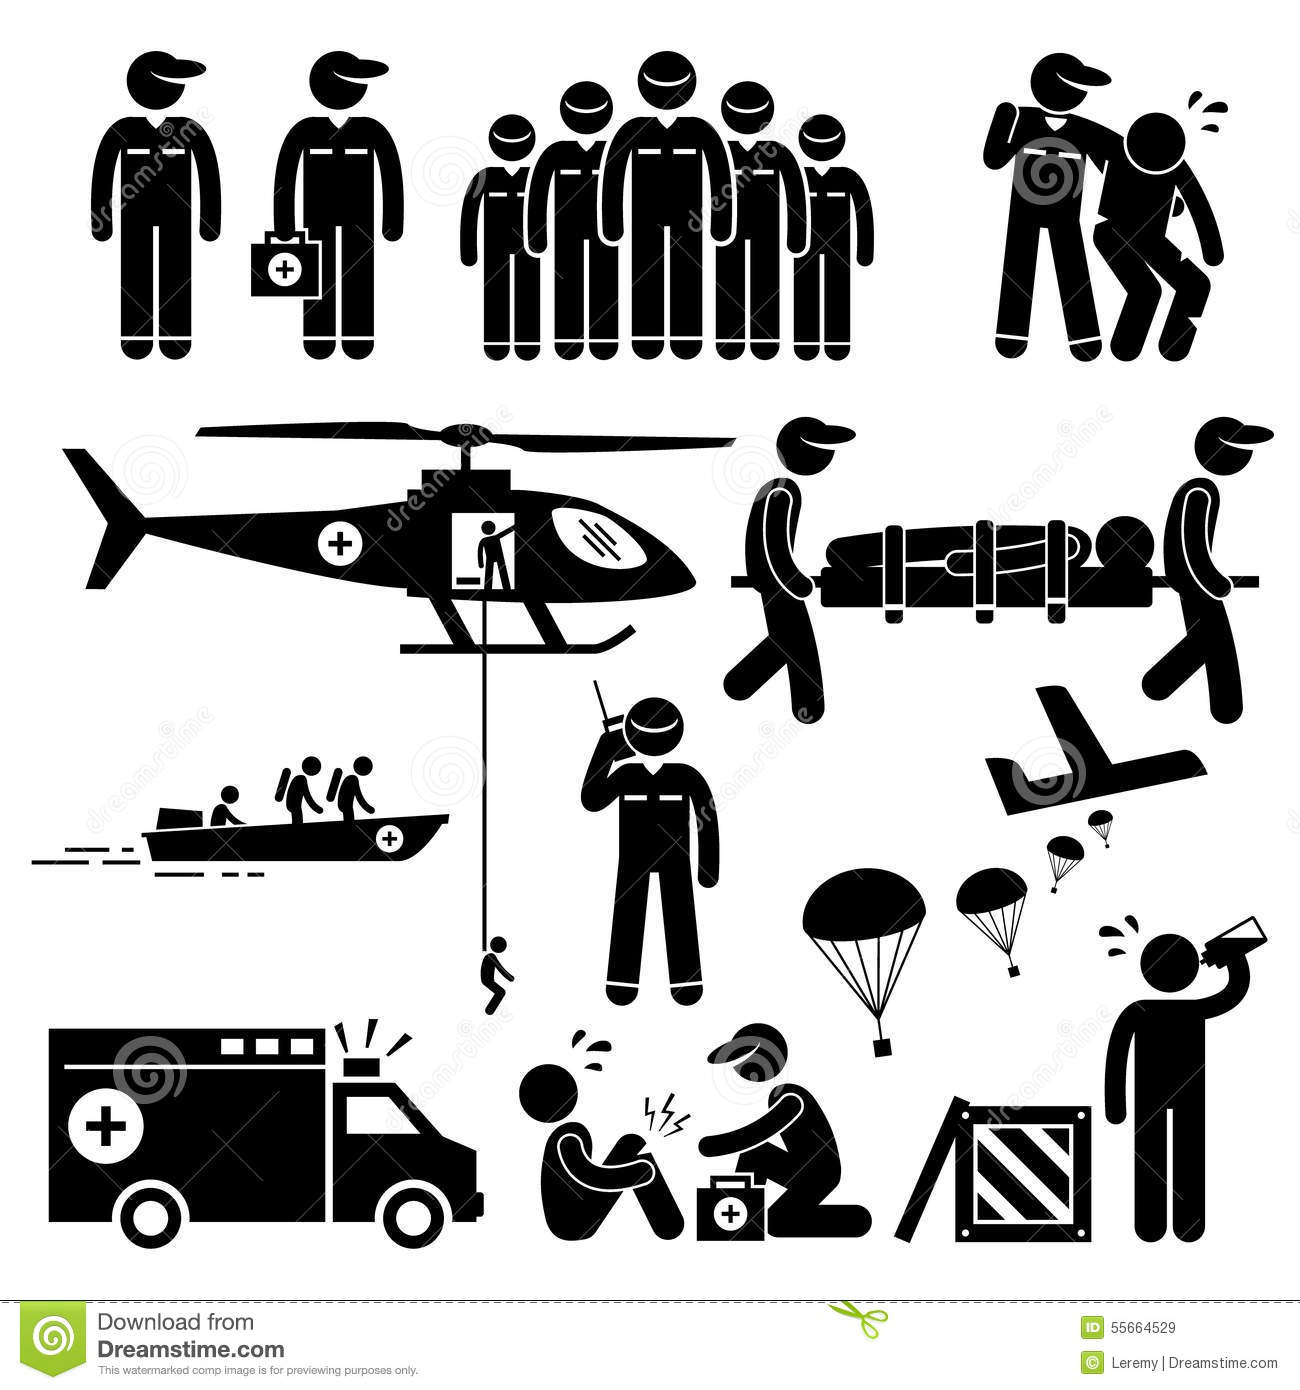 1369 Emergency free clipart.